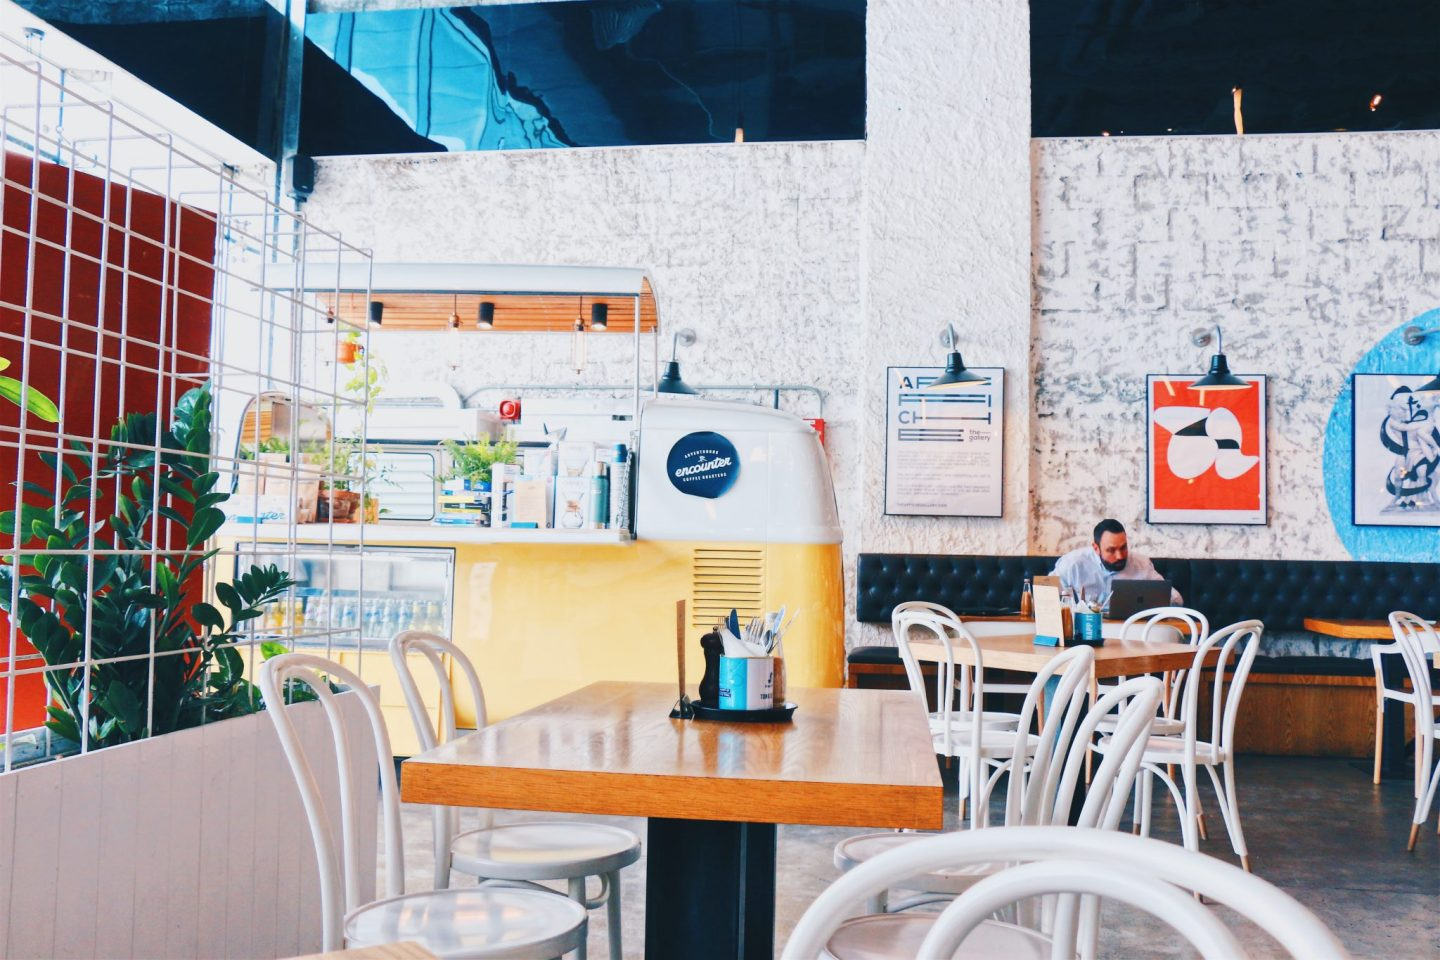 Cute Cafes to Eat at in Dubai